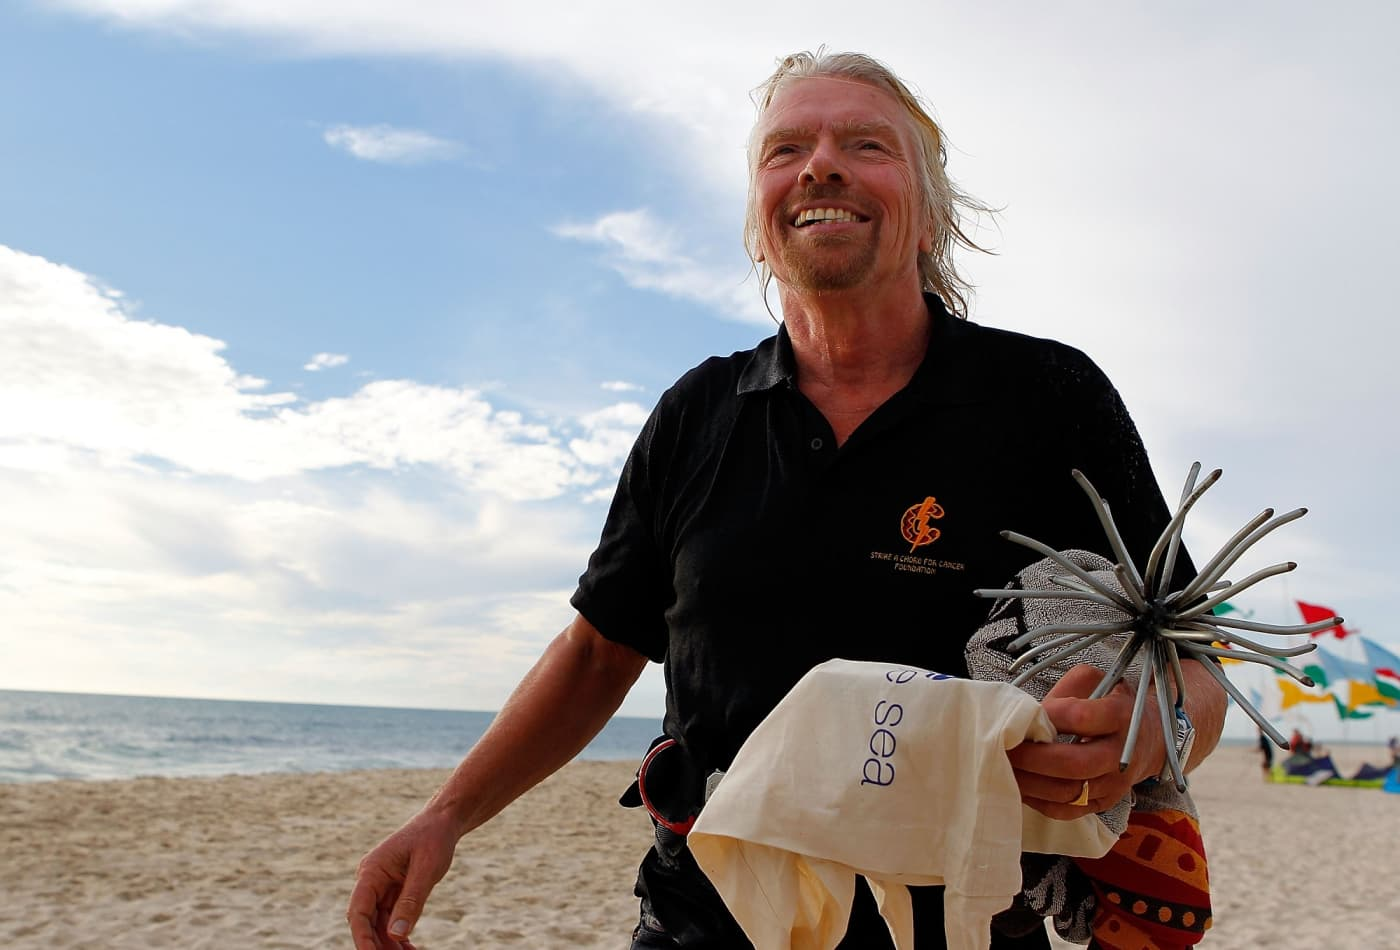 Richard Branson's top productivity trick is a simple habit that has nothing to do with email or to-do lists